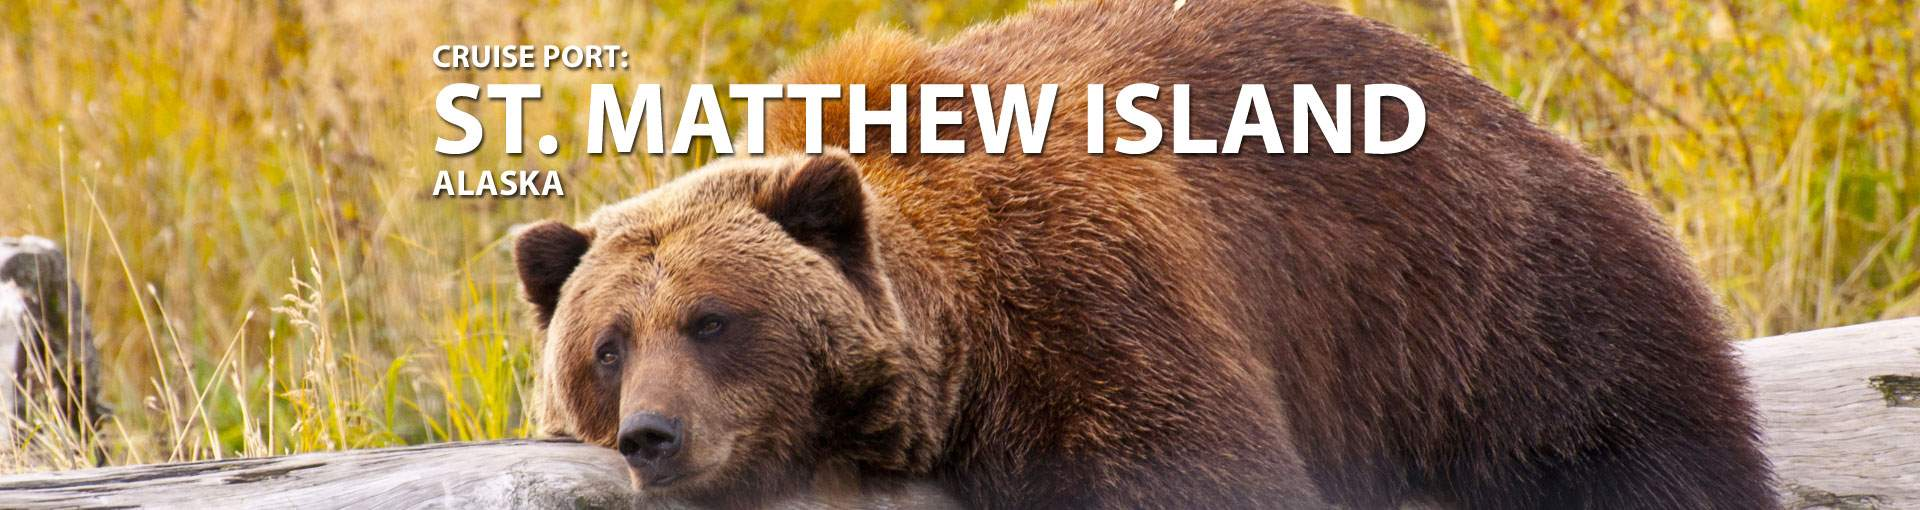 Cruises to St. Matthew Island, Alaska